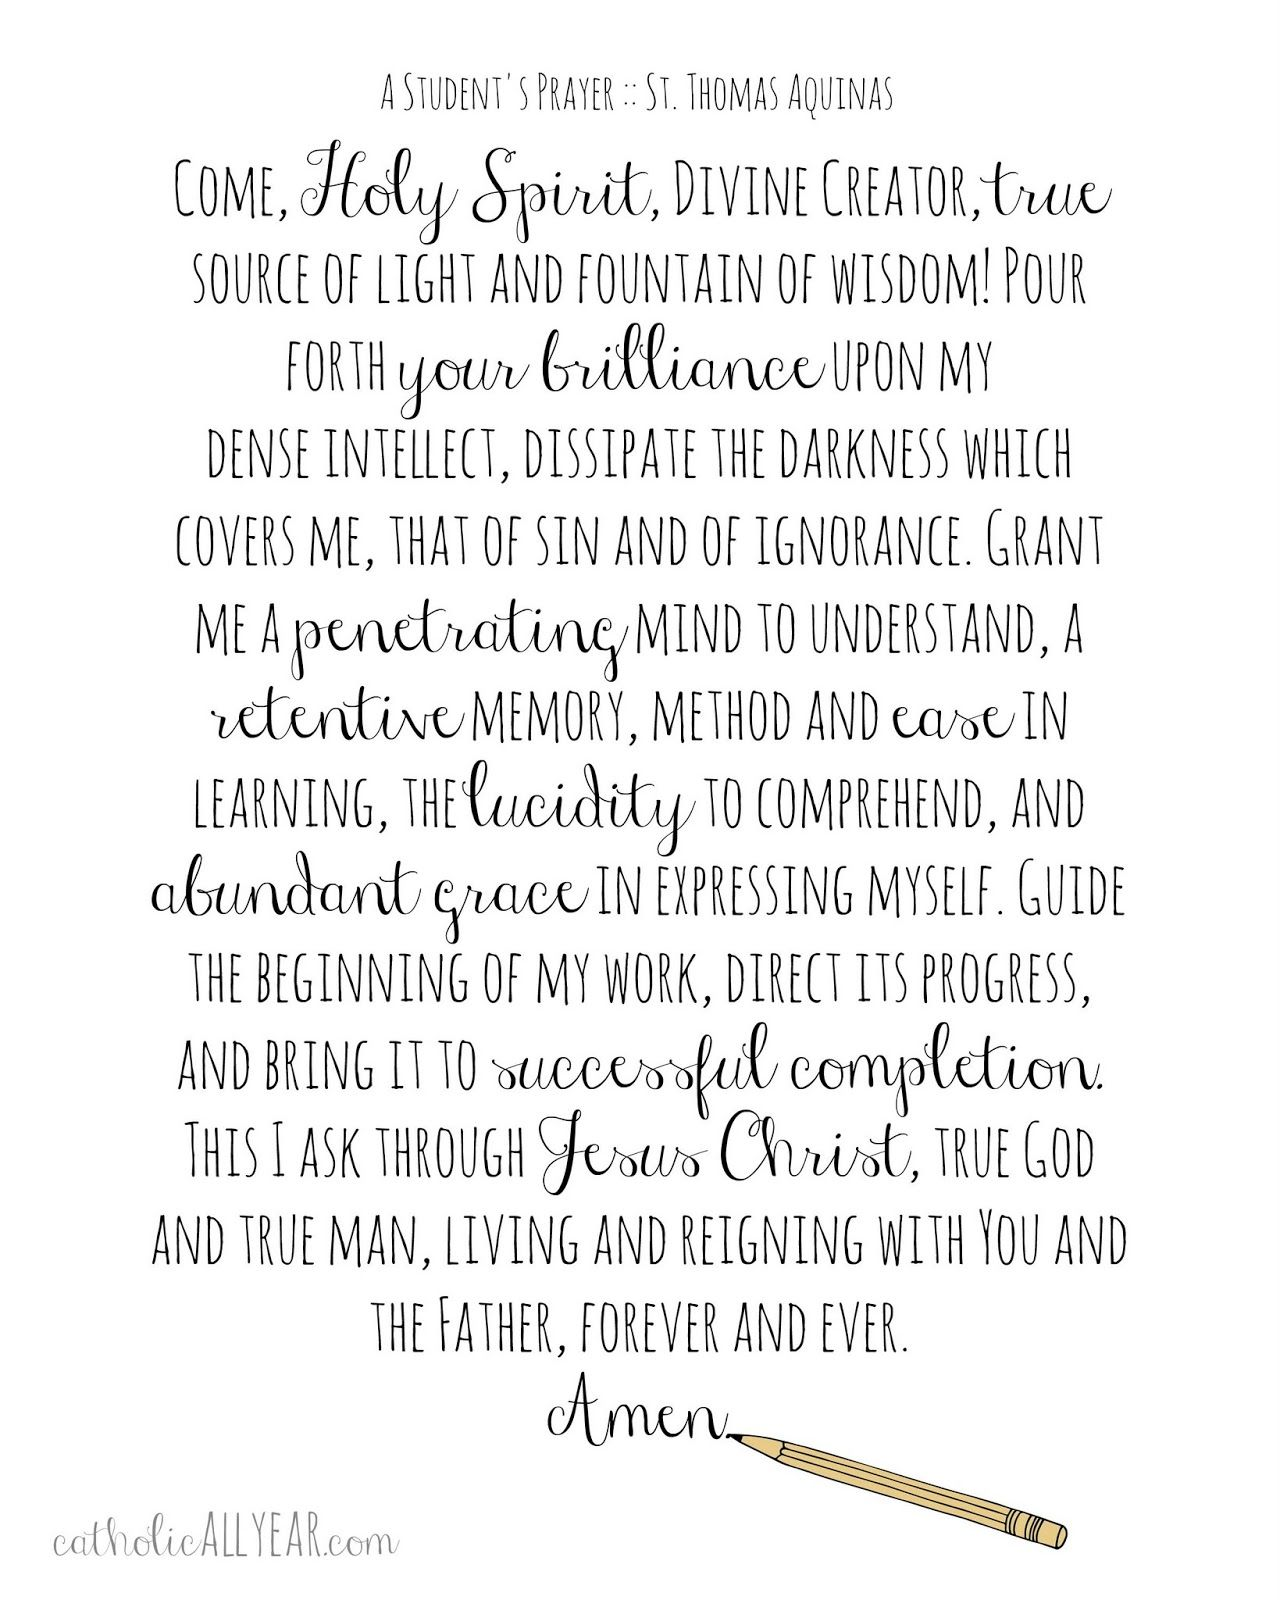 Catholic All Year A Student S Prayer Free Printable St